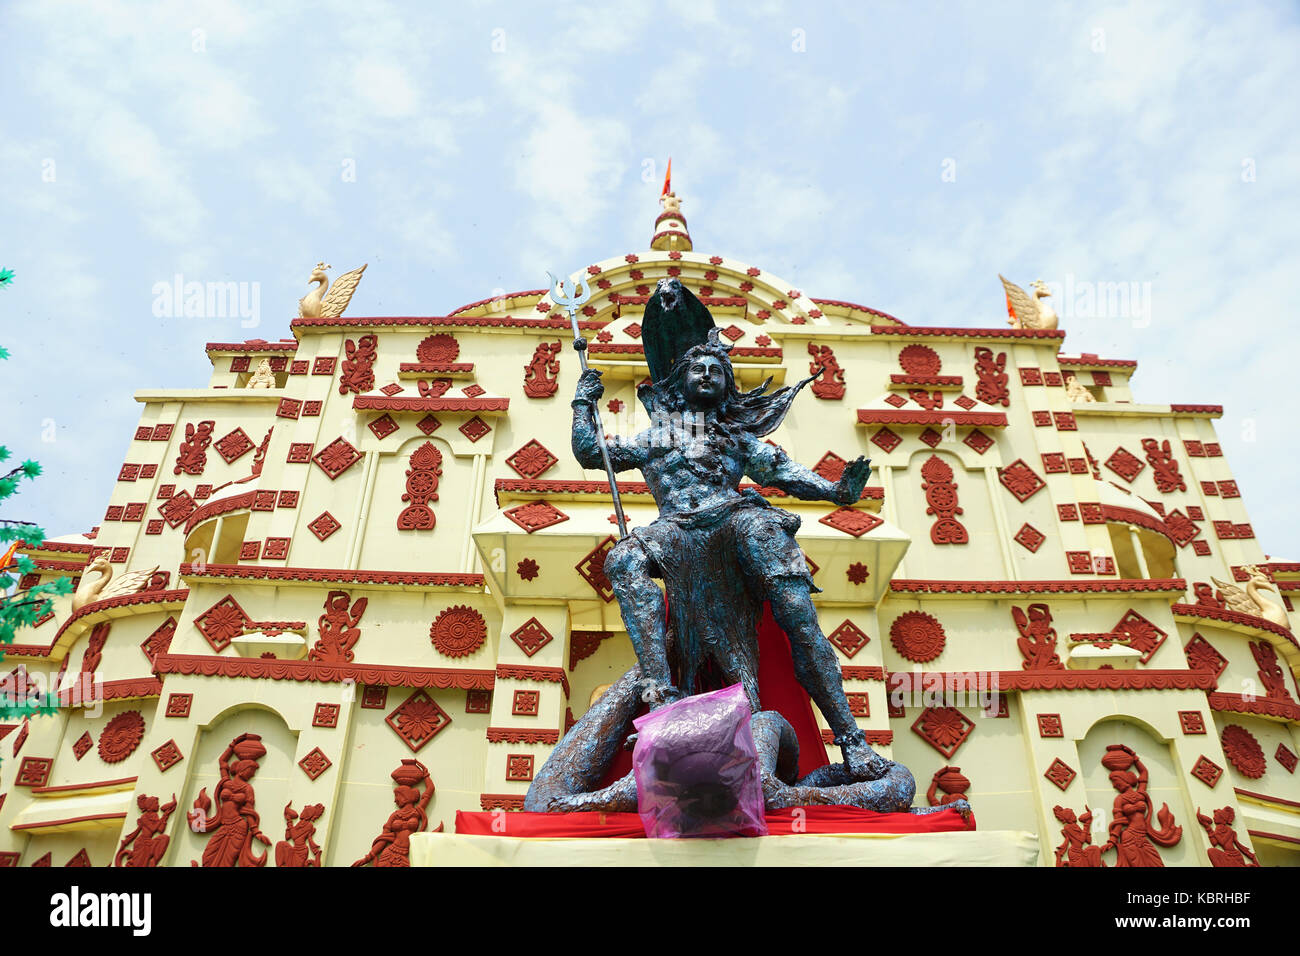 The idol of lord shiva and durga puja pandal stock photo 162173075 the idol of lord shiva and durga puja pandal altavistaventures Image collections